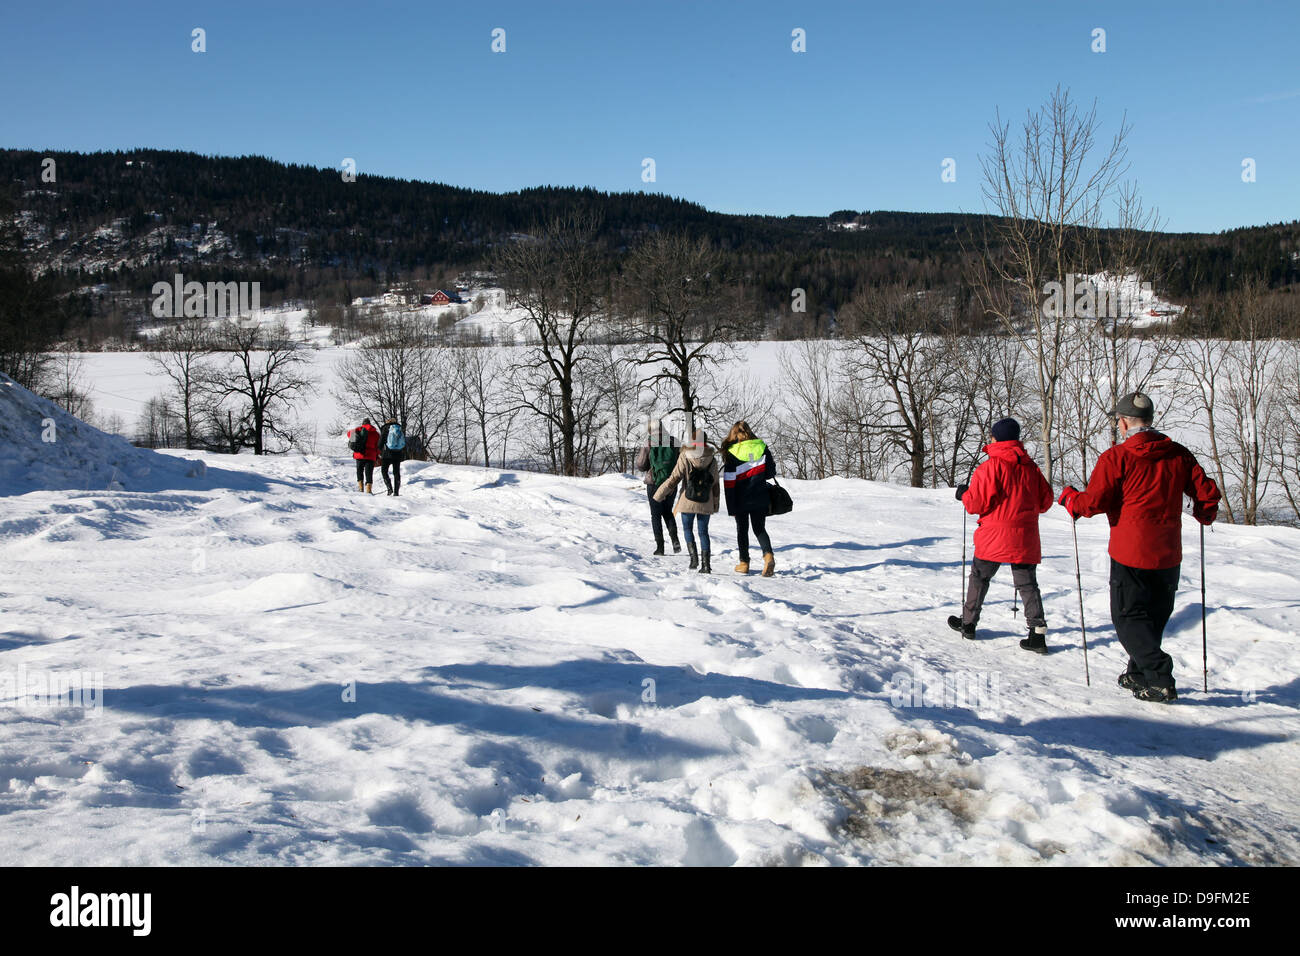 Walkers in the snow at Sem Lake, Asker, South Norway, Scandinavia - Stock Image